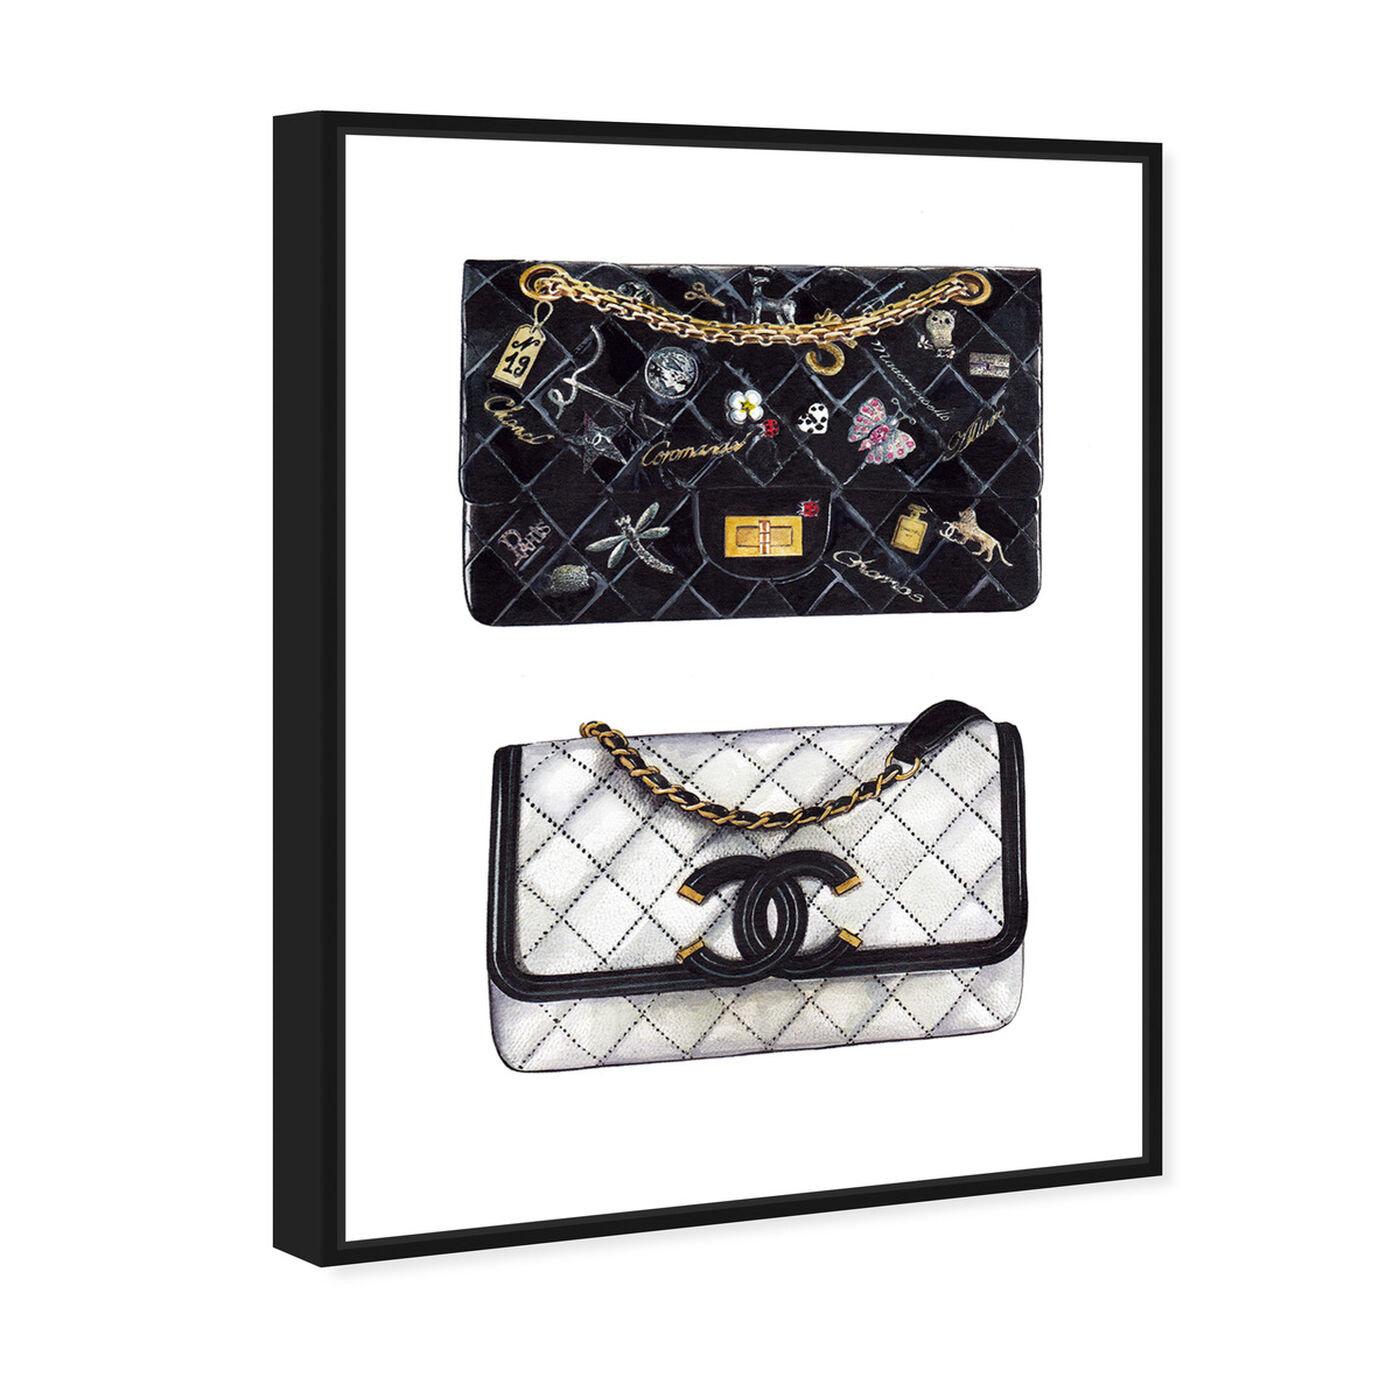 Angled view of Doll Memories - Iconic Boy Bag featuring fashion and glam and handbags art.